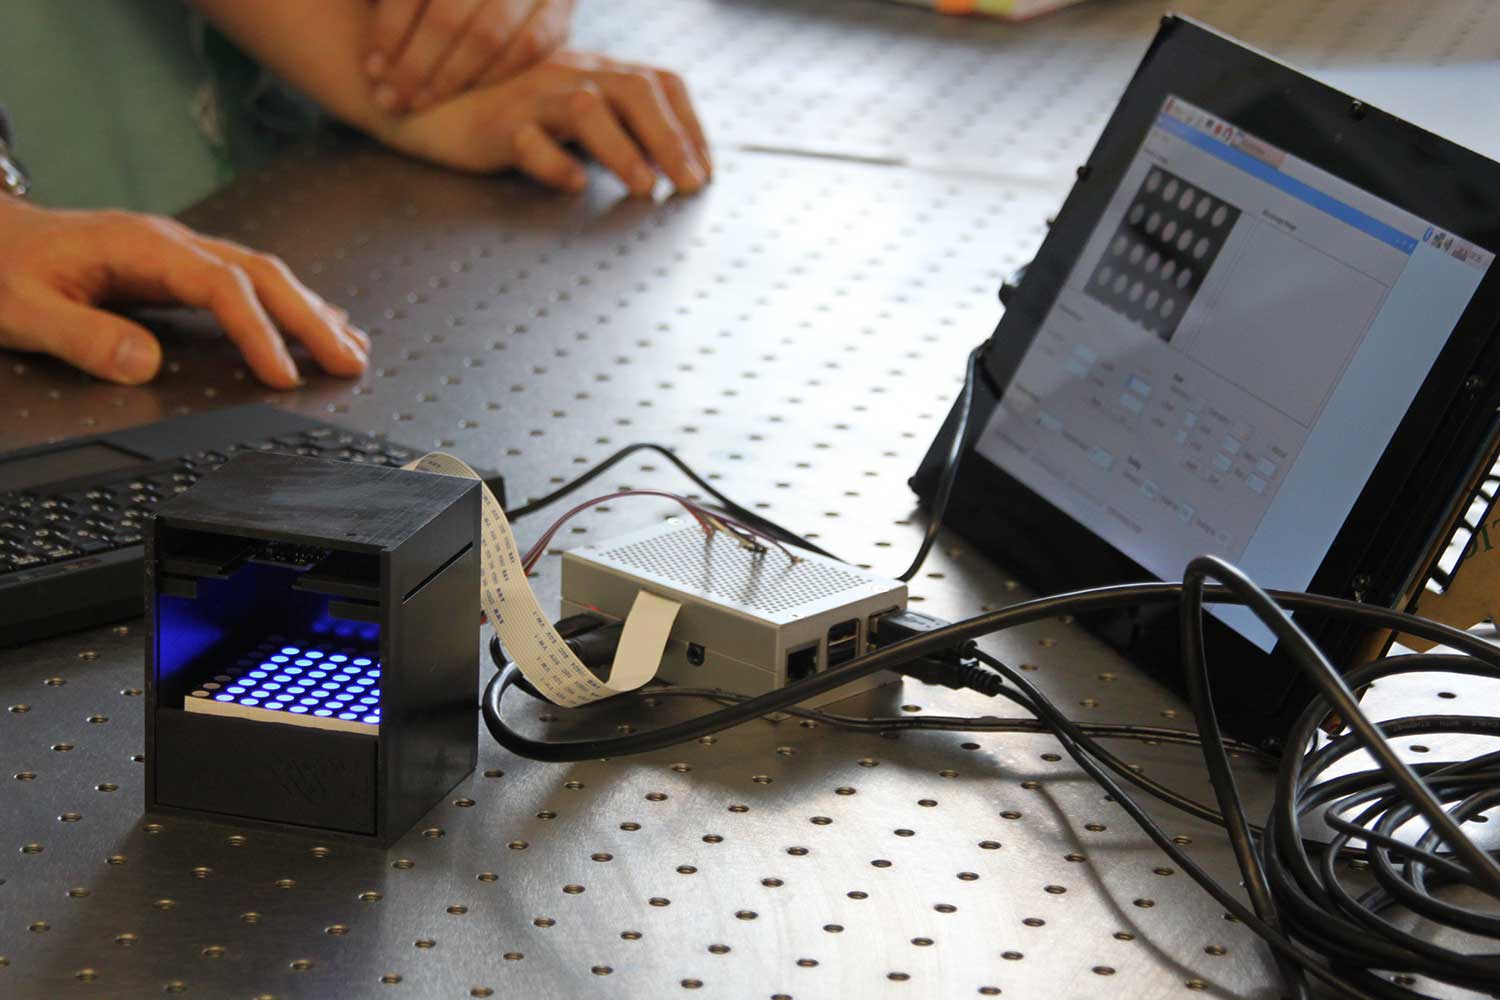 The blue LEDs can be controlled individually using the tablet, or dynamic light patterns can be produced. Credit: Andrea Hoferichter/TU Braunschweig